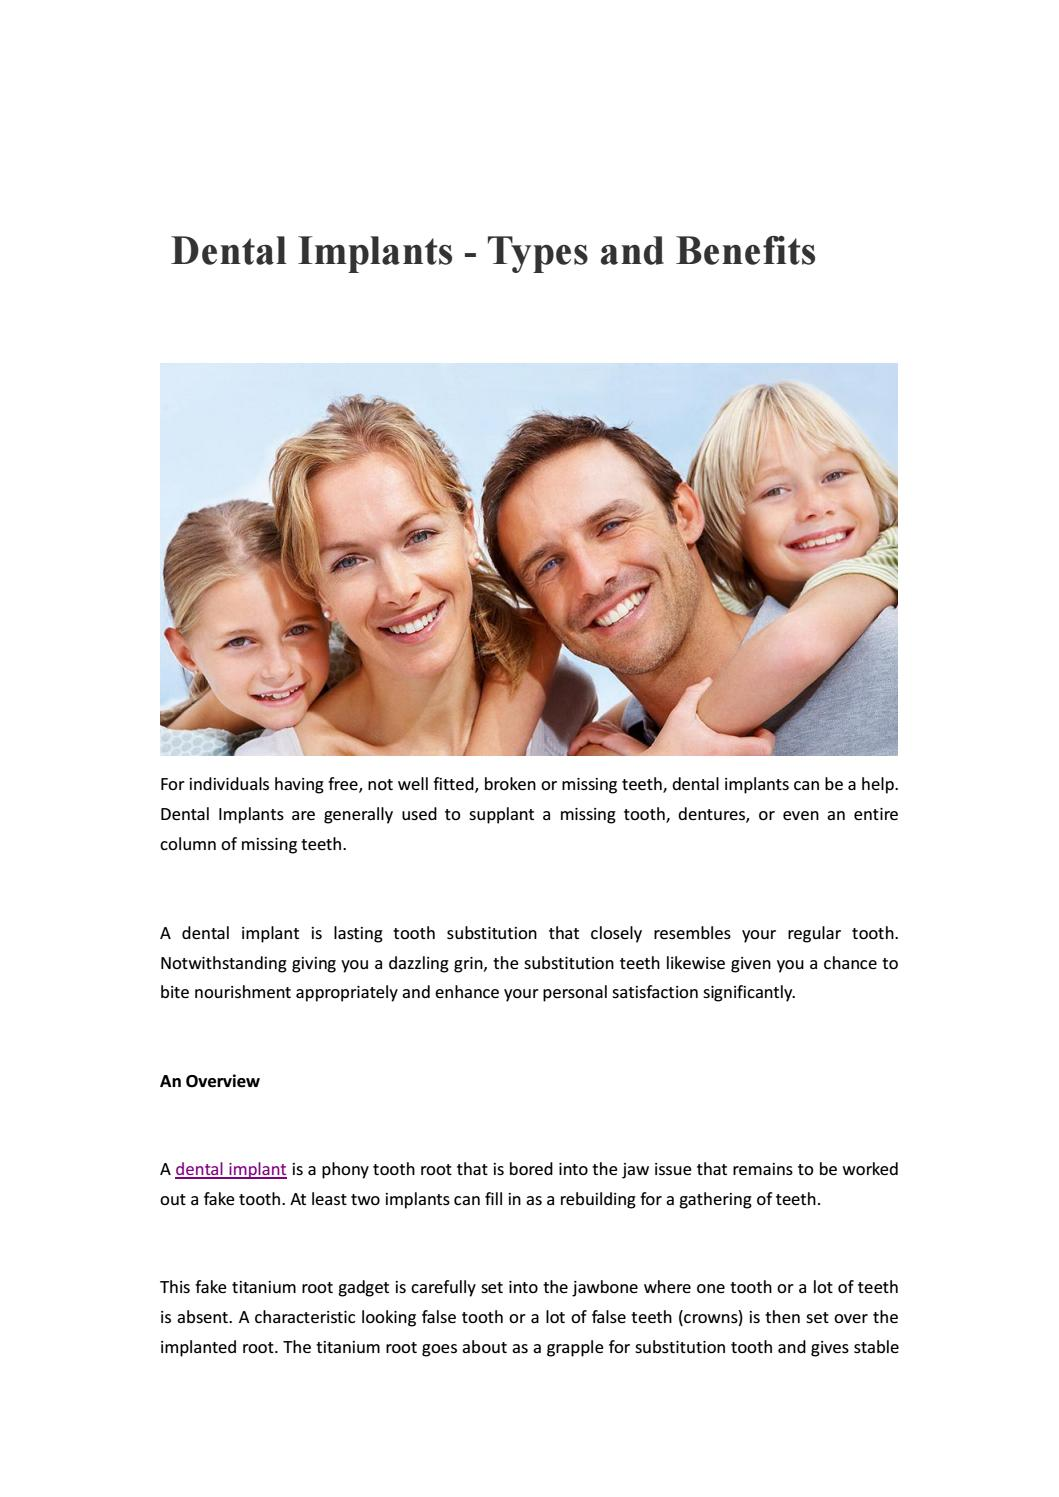 Dental Implant by implantdentalmelbourneau - issuu